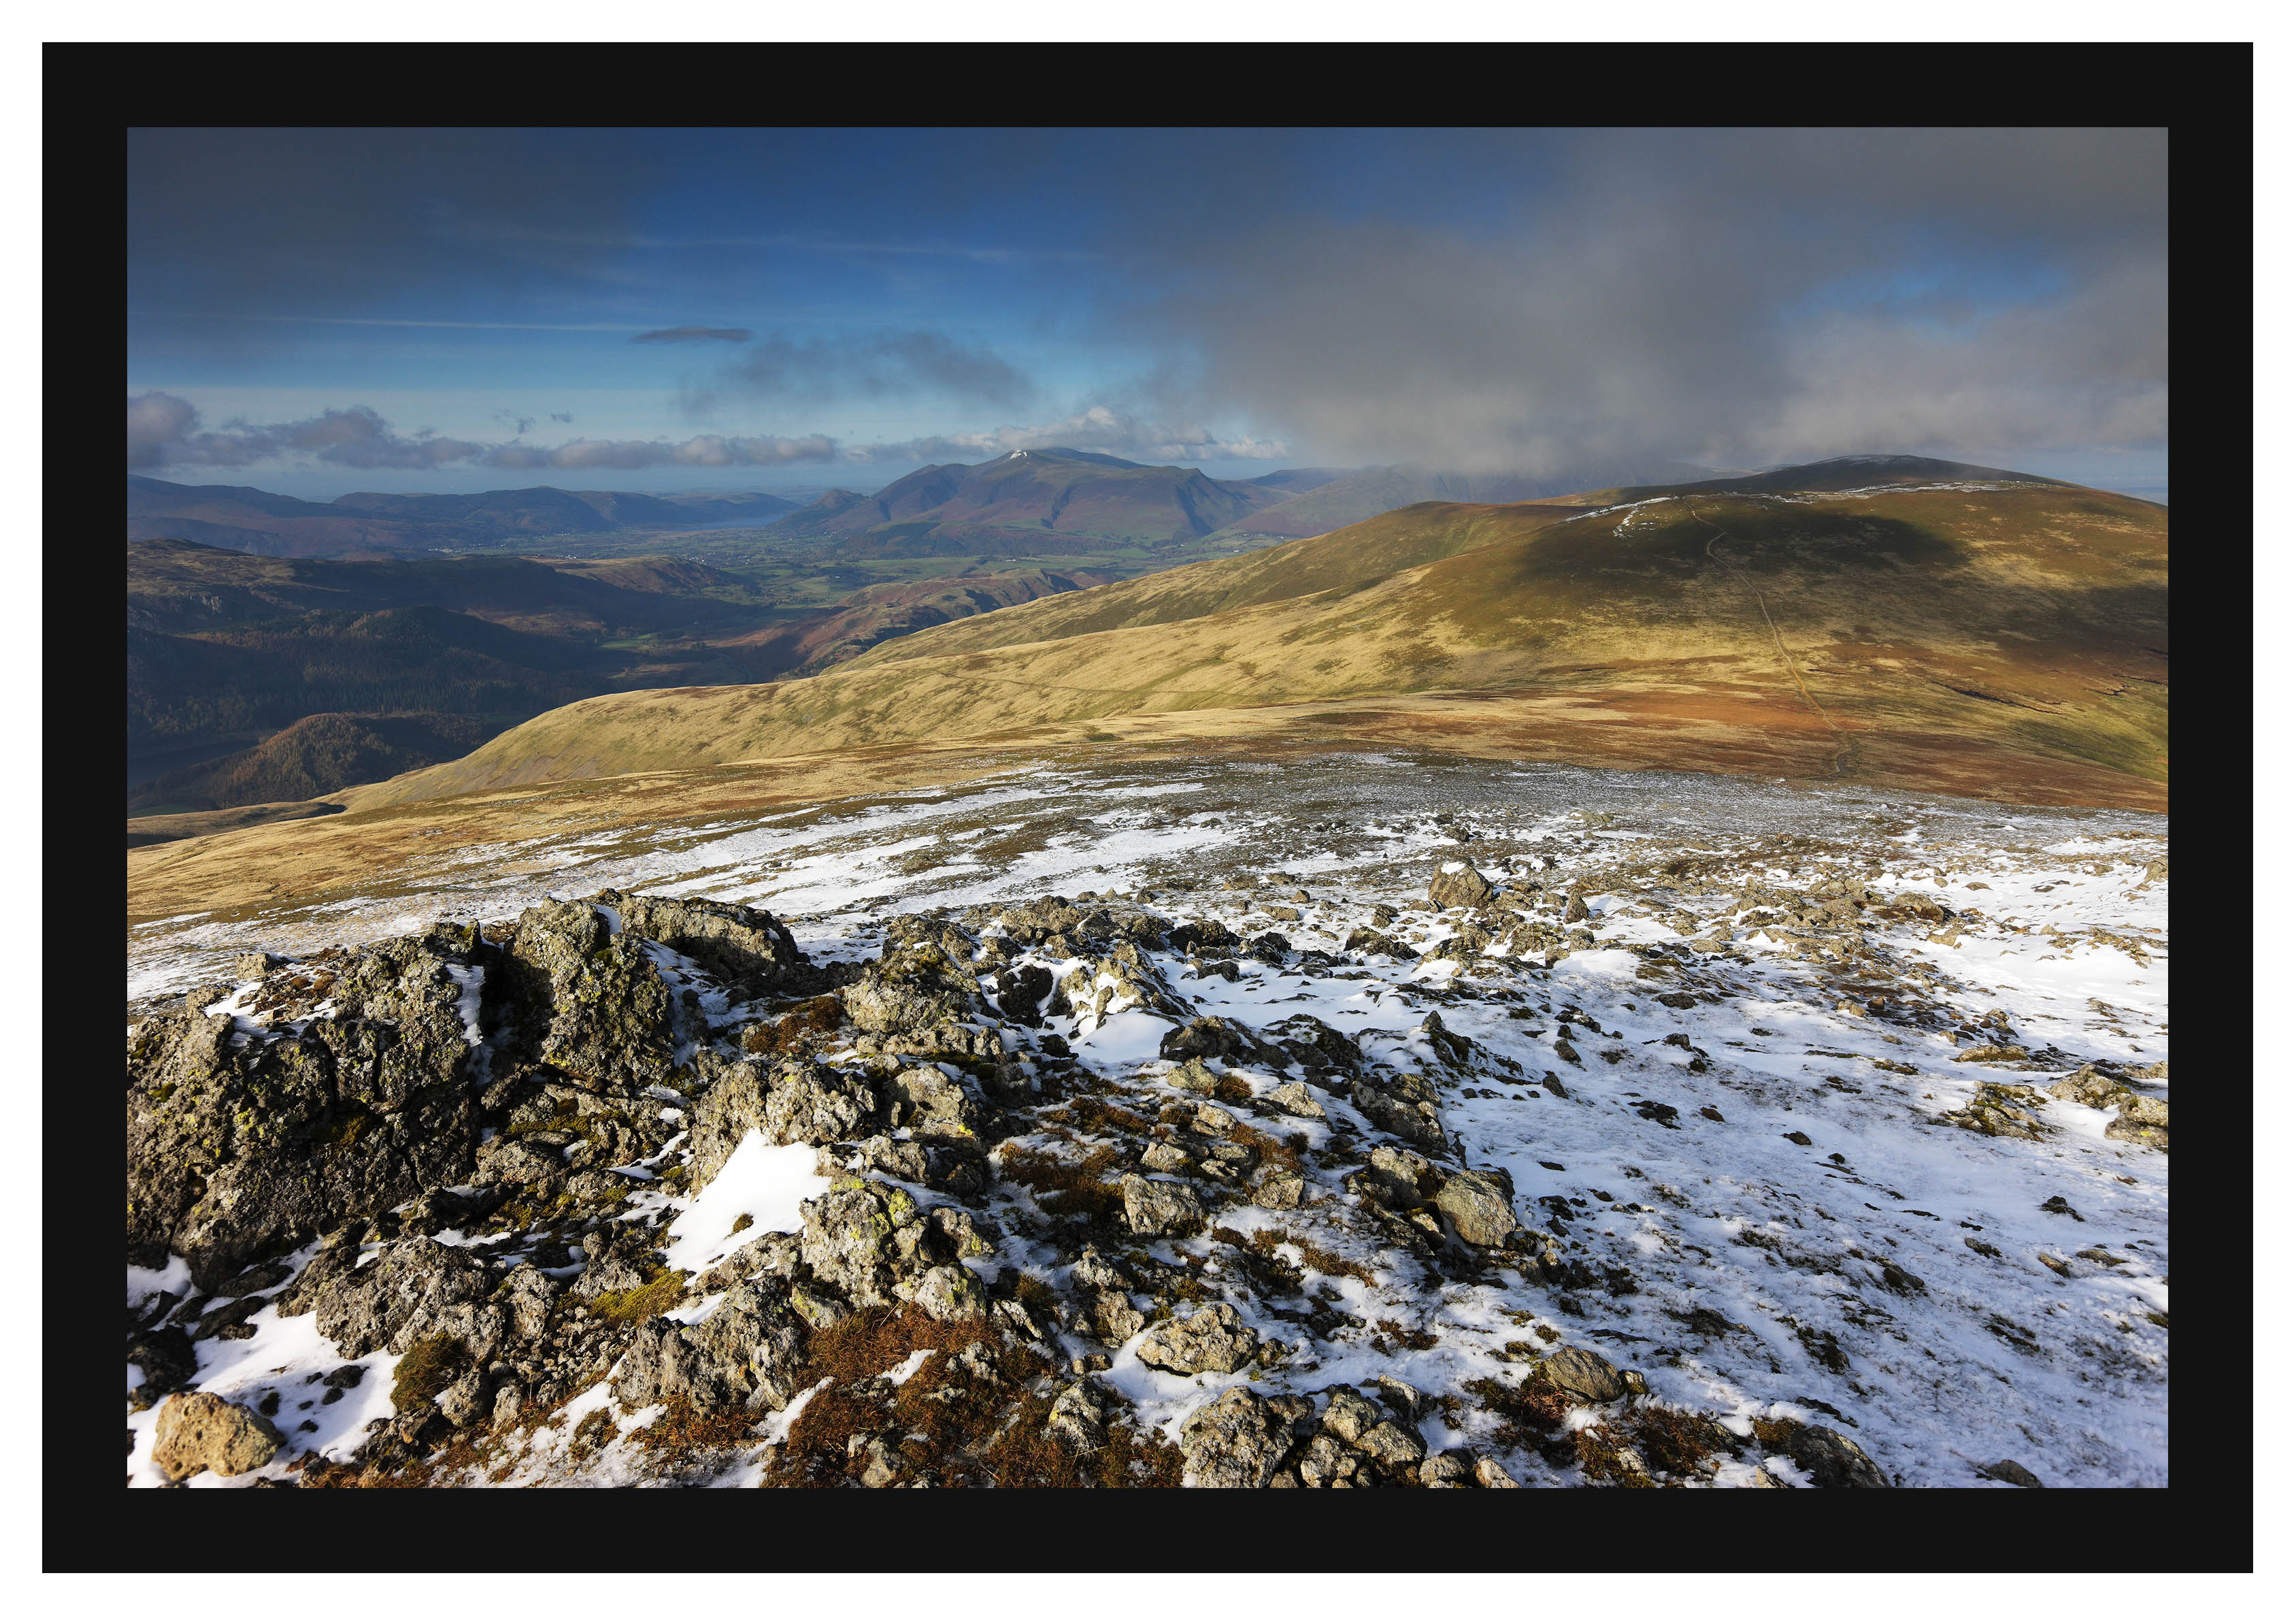 46E7790 Late afternoon sun on Skiddaw and Stybarrow Dodd from Raise